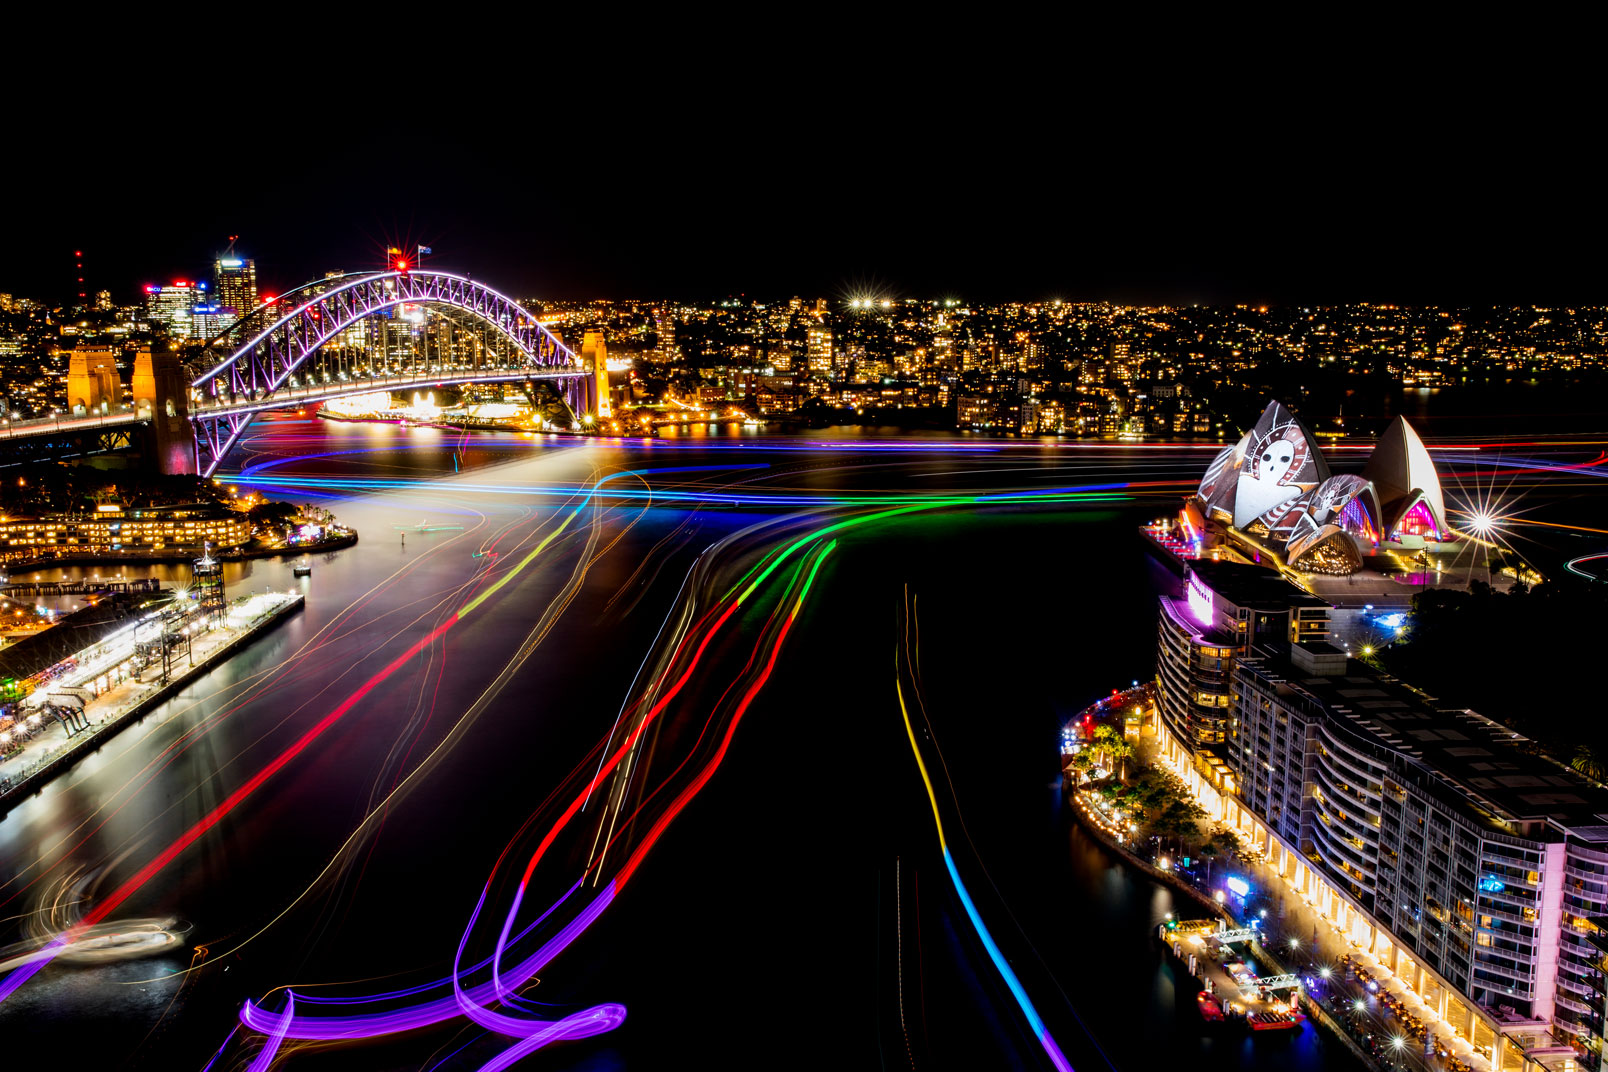 Vivid-Sydney-2016_opening-night_Clr-Quay_Harbour-Lights_Songlines_CREDIT-Destination-NSW_JH-001B